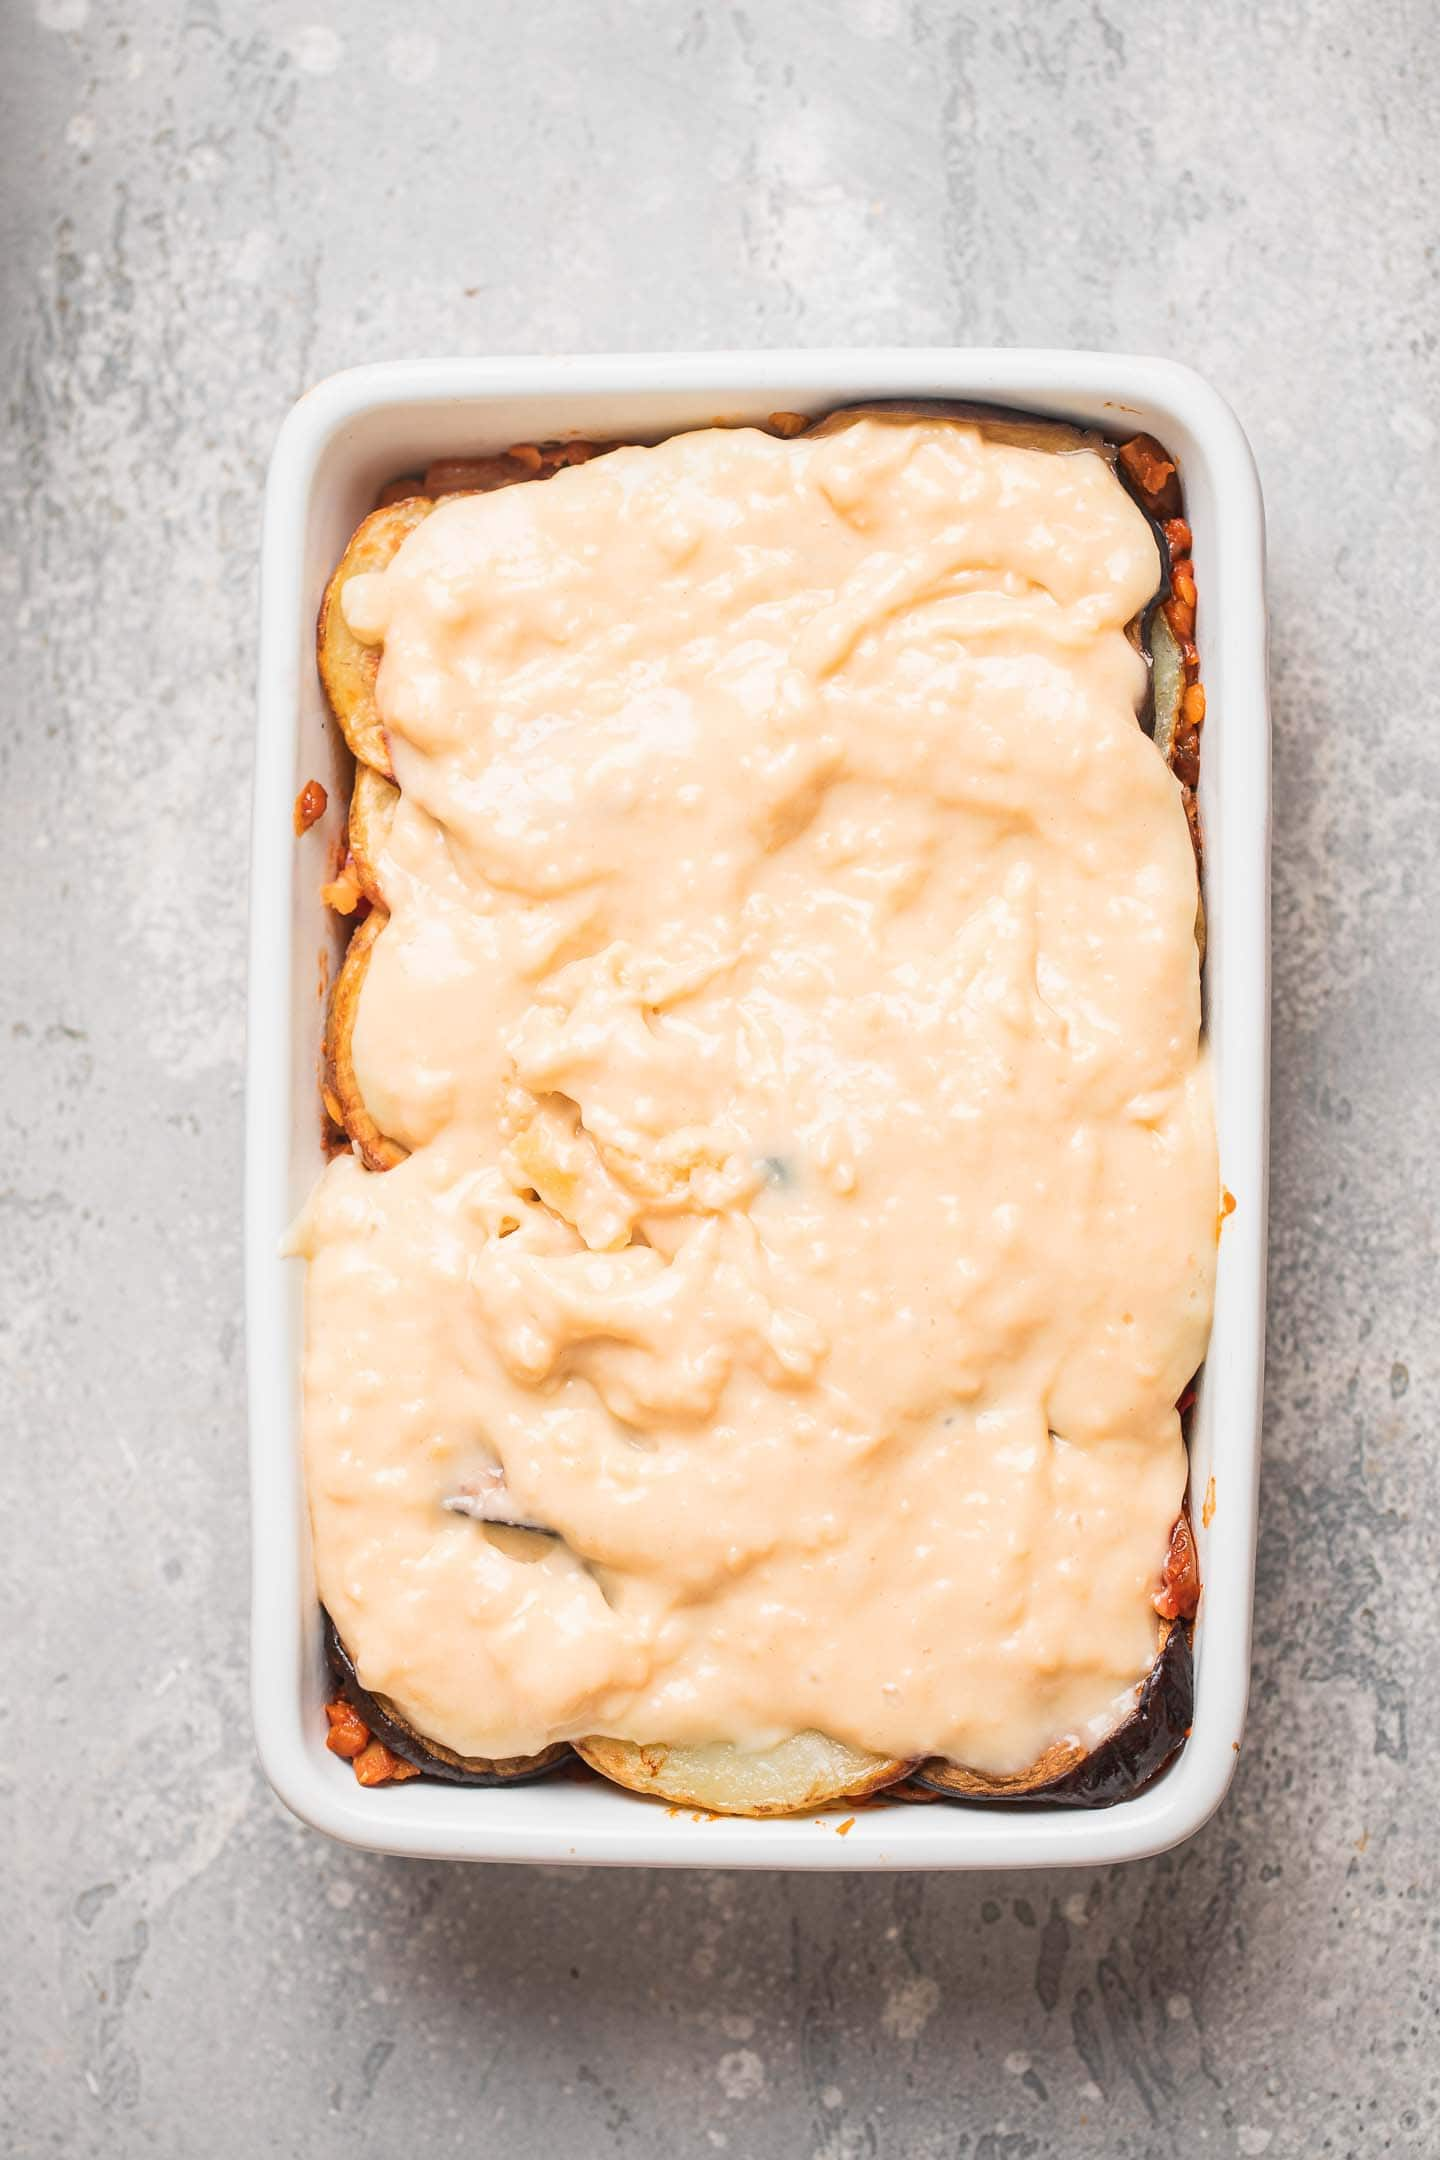 Lentil Moussaka with a dairy-free Bechamel sauce before baking